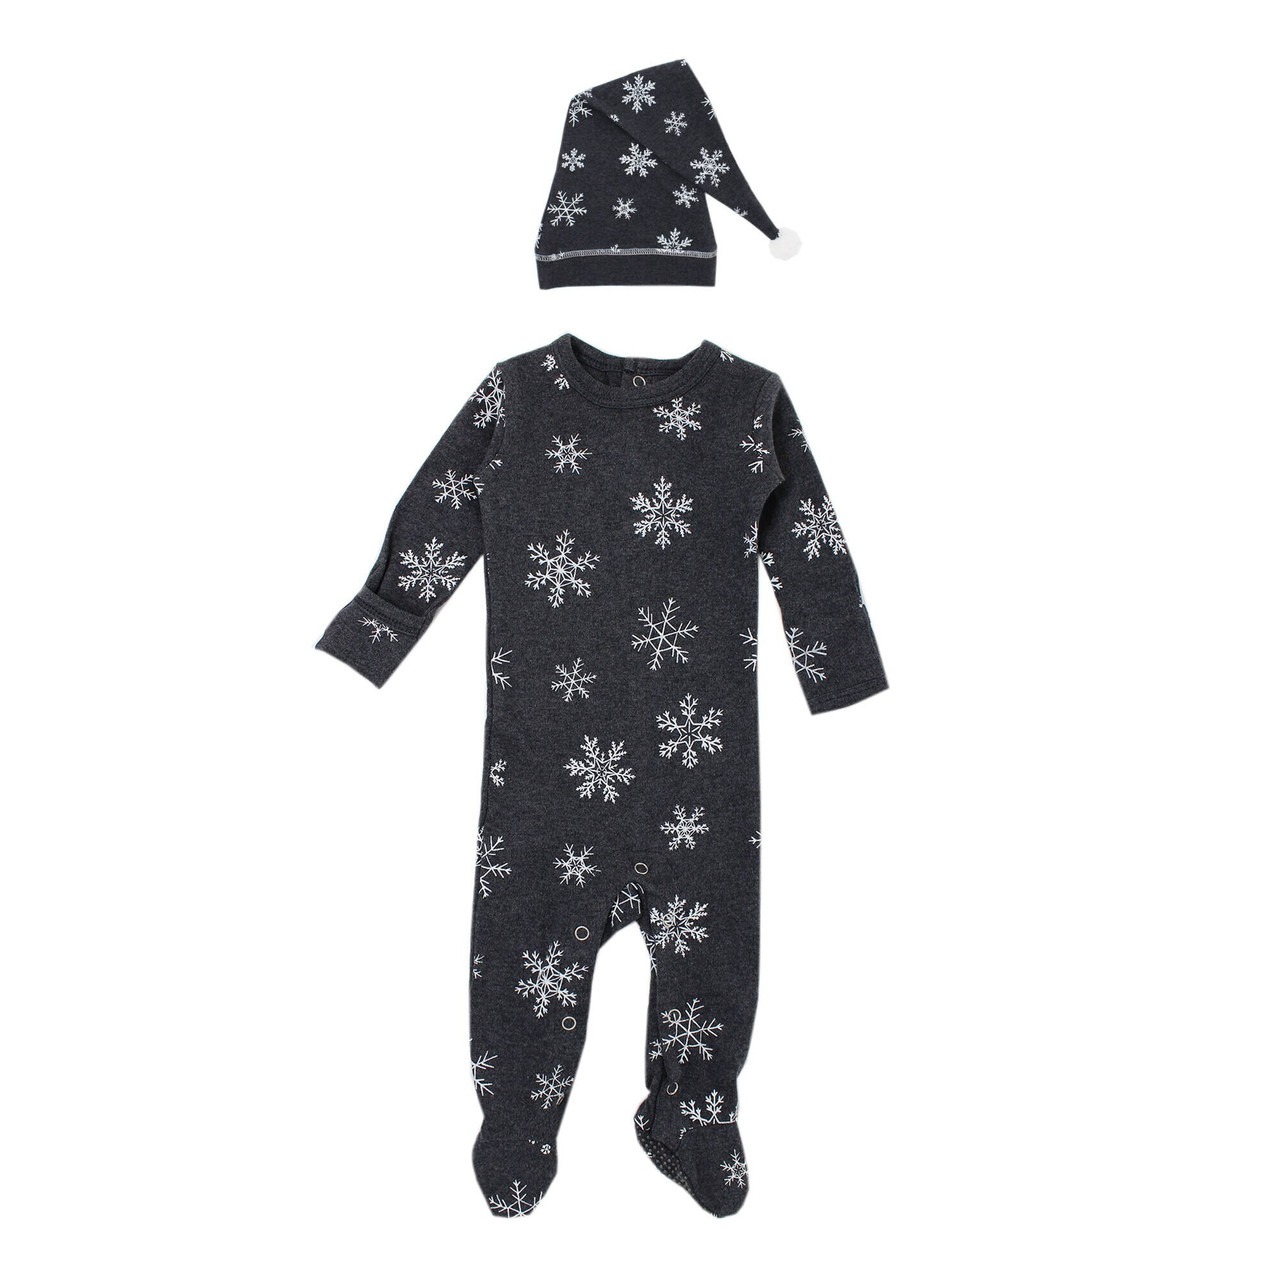 Organic Overall & Cap Set in Frost, Flat